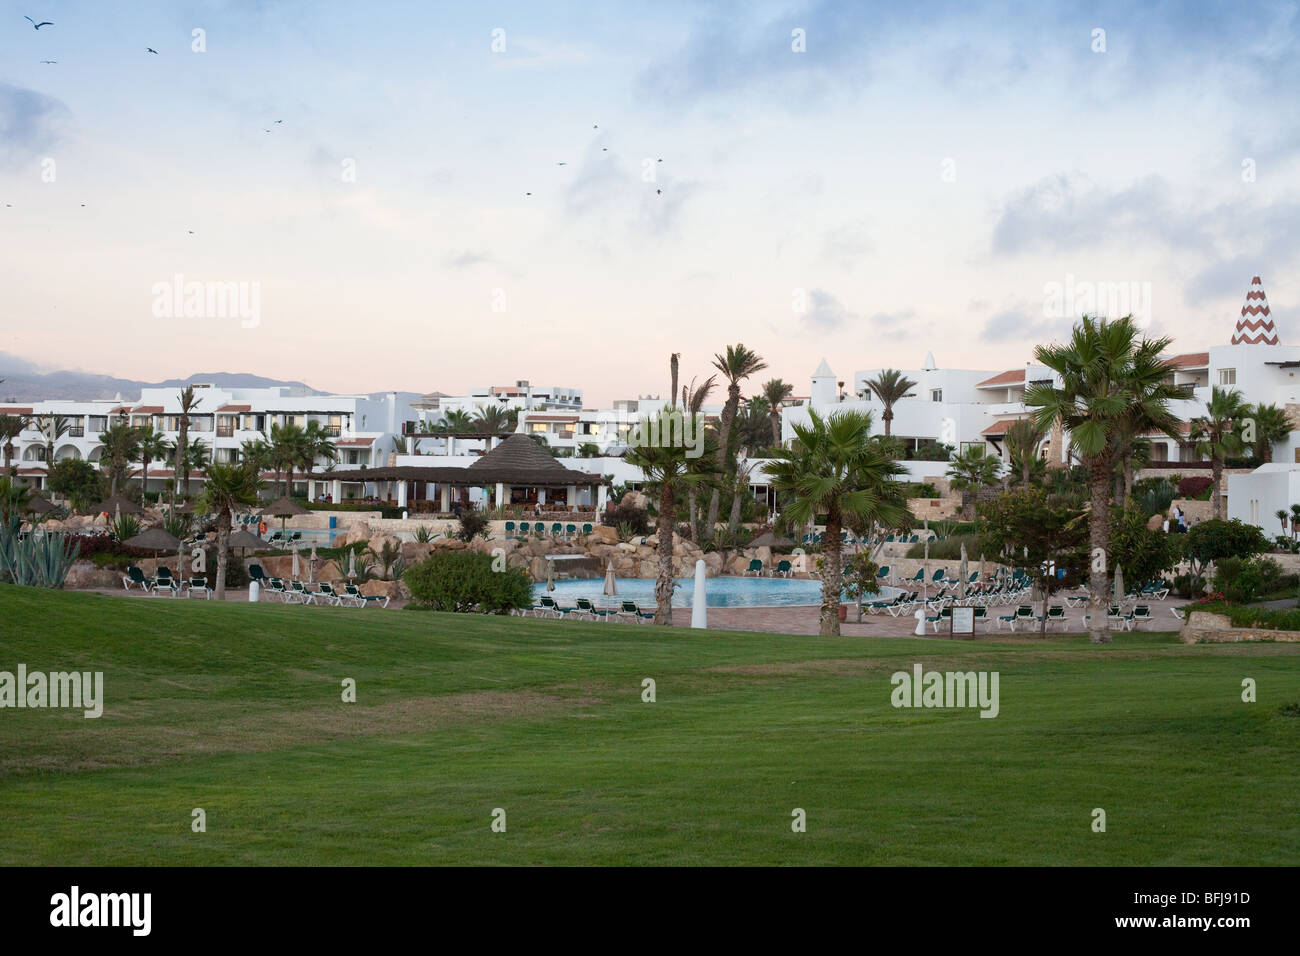 riu resort stock photos amp riu resort stock images alamy